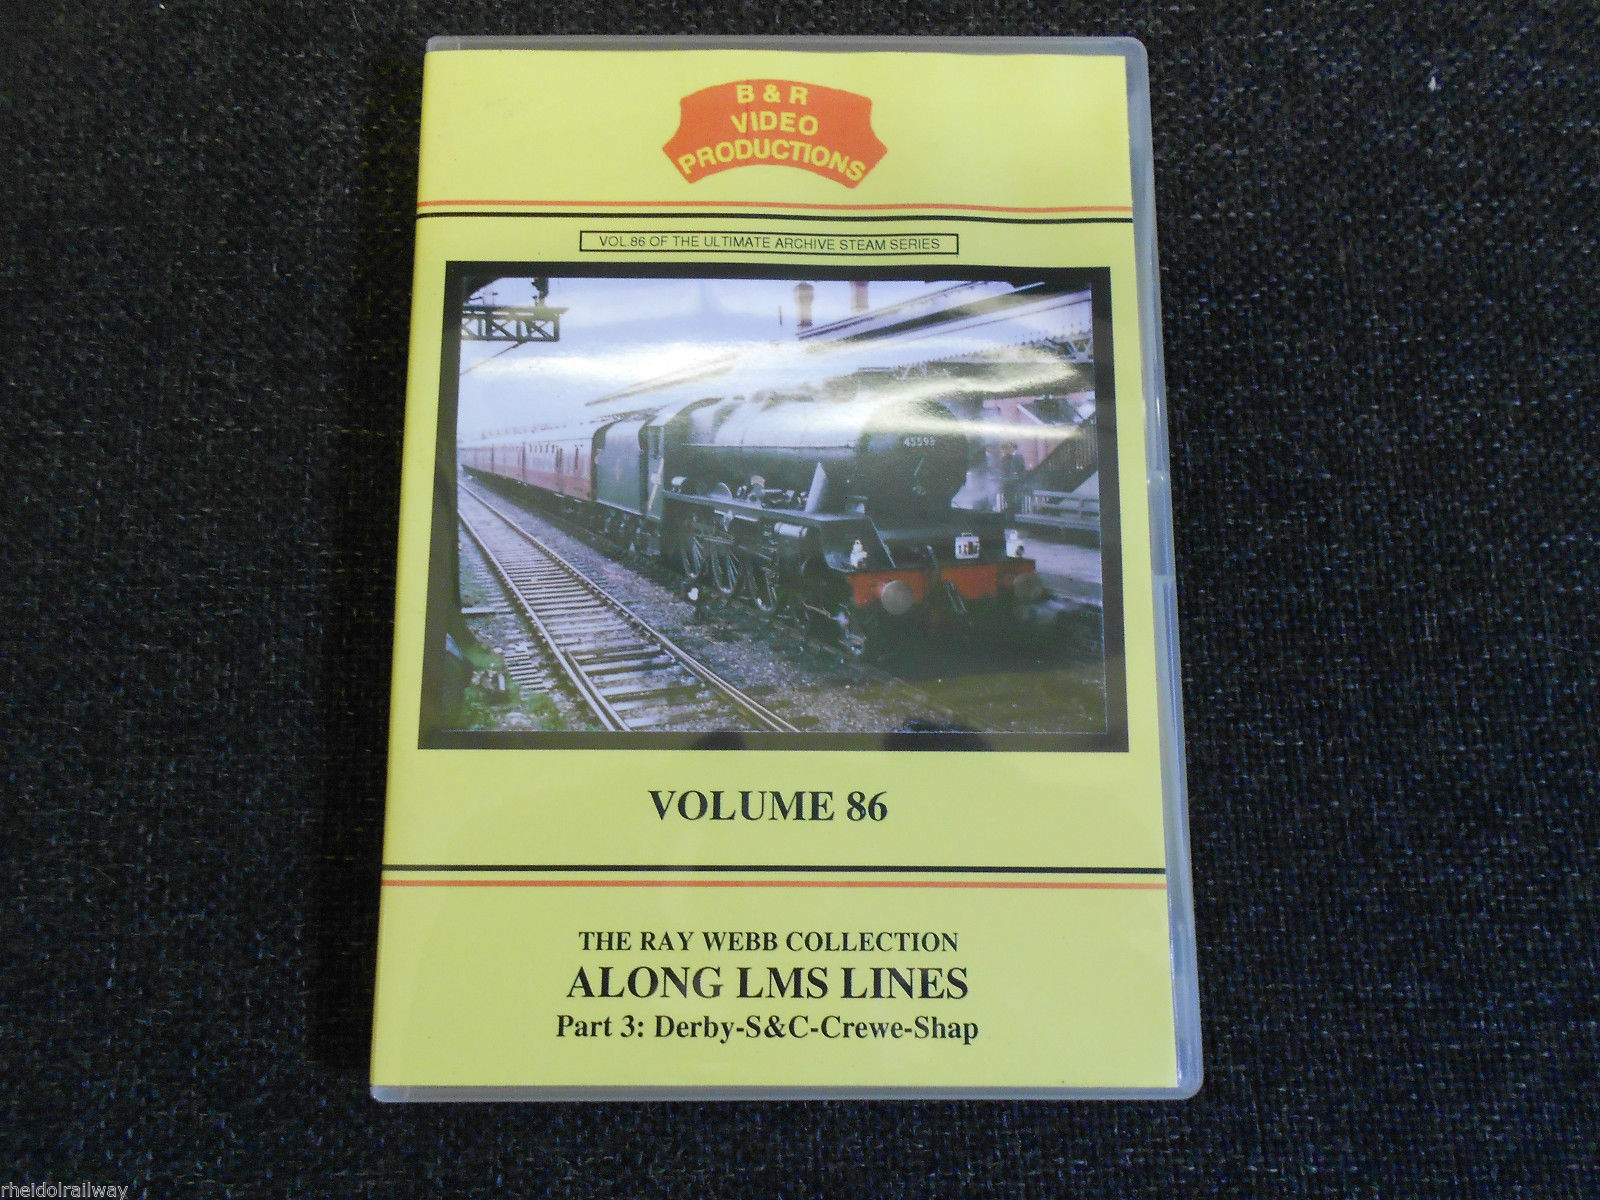 Derby, Settle & Carlisle, Crewe, Shap, Along LMS Lines Part 3 B&R Vol 86 DVD - The Vale of Rheidol Railway